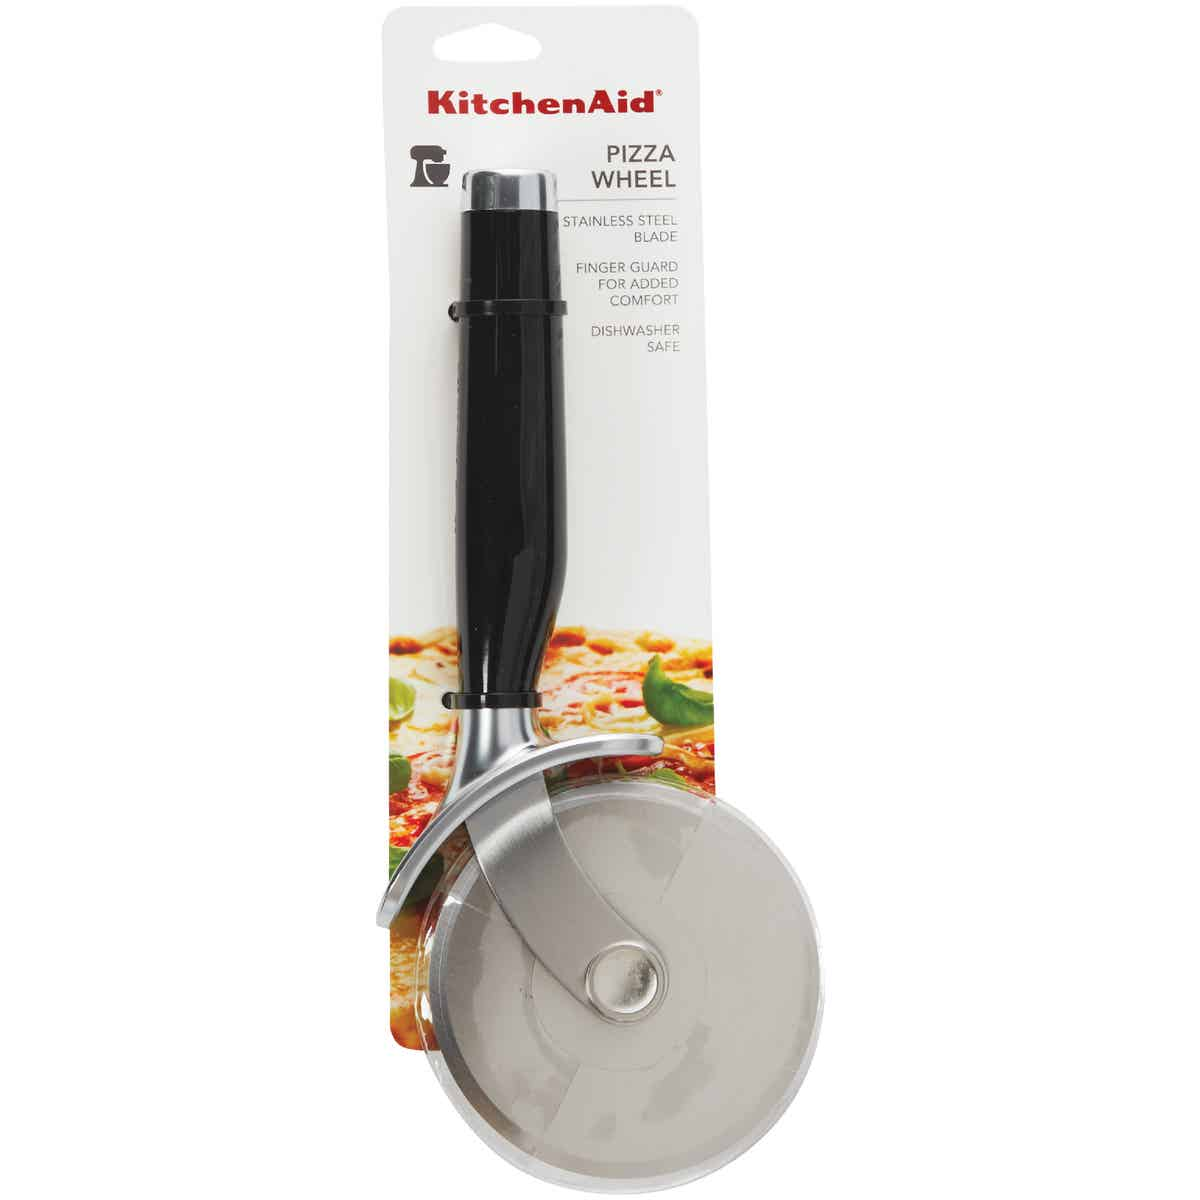 Kitchenaid Black Pizza Roller Cutter Do It Best World S Largest Hardware Store